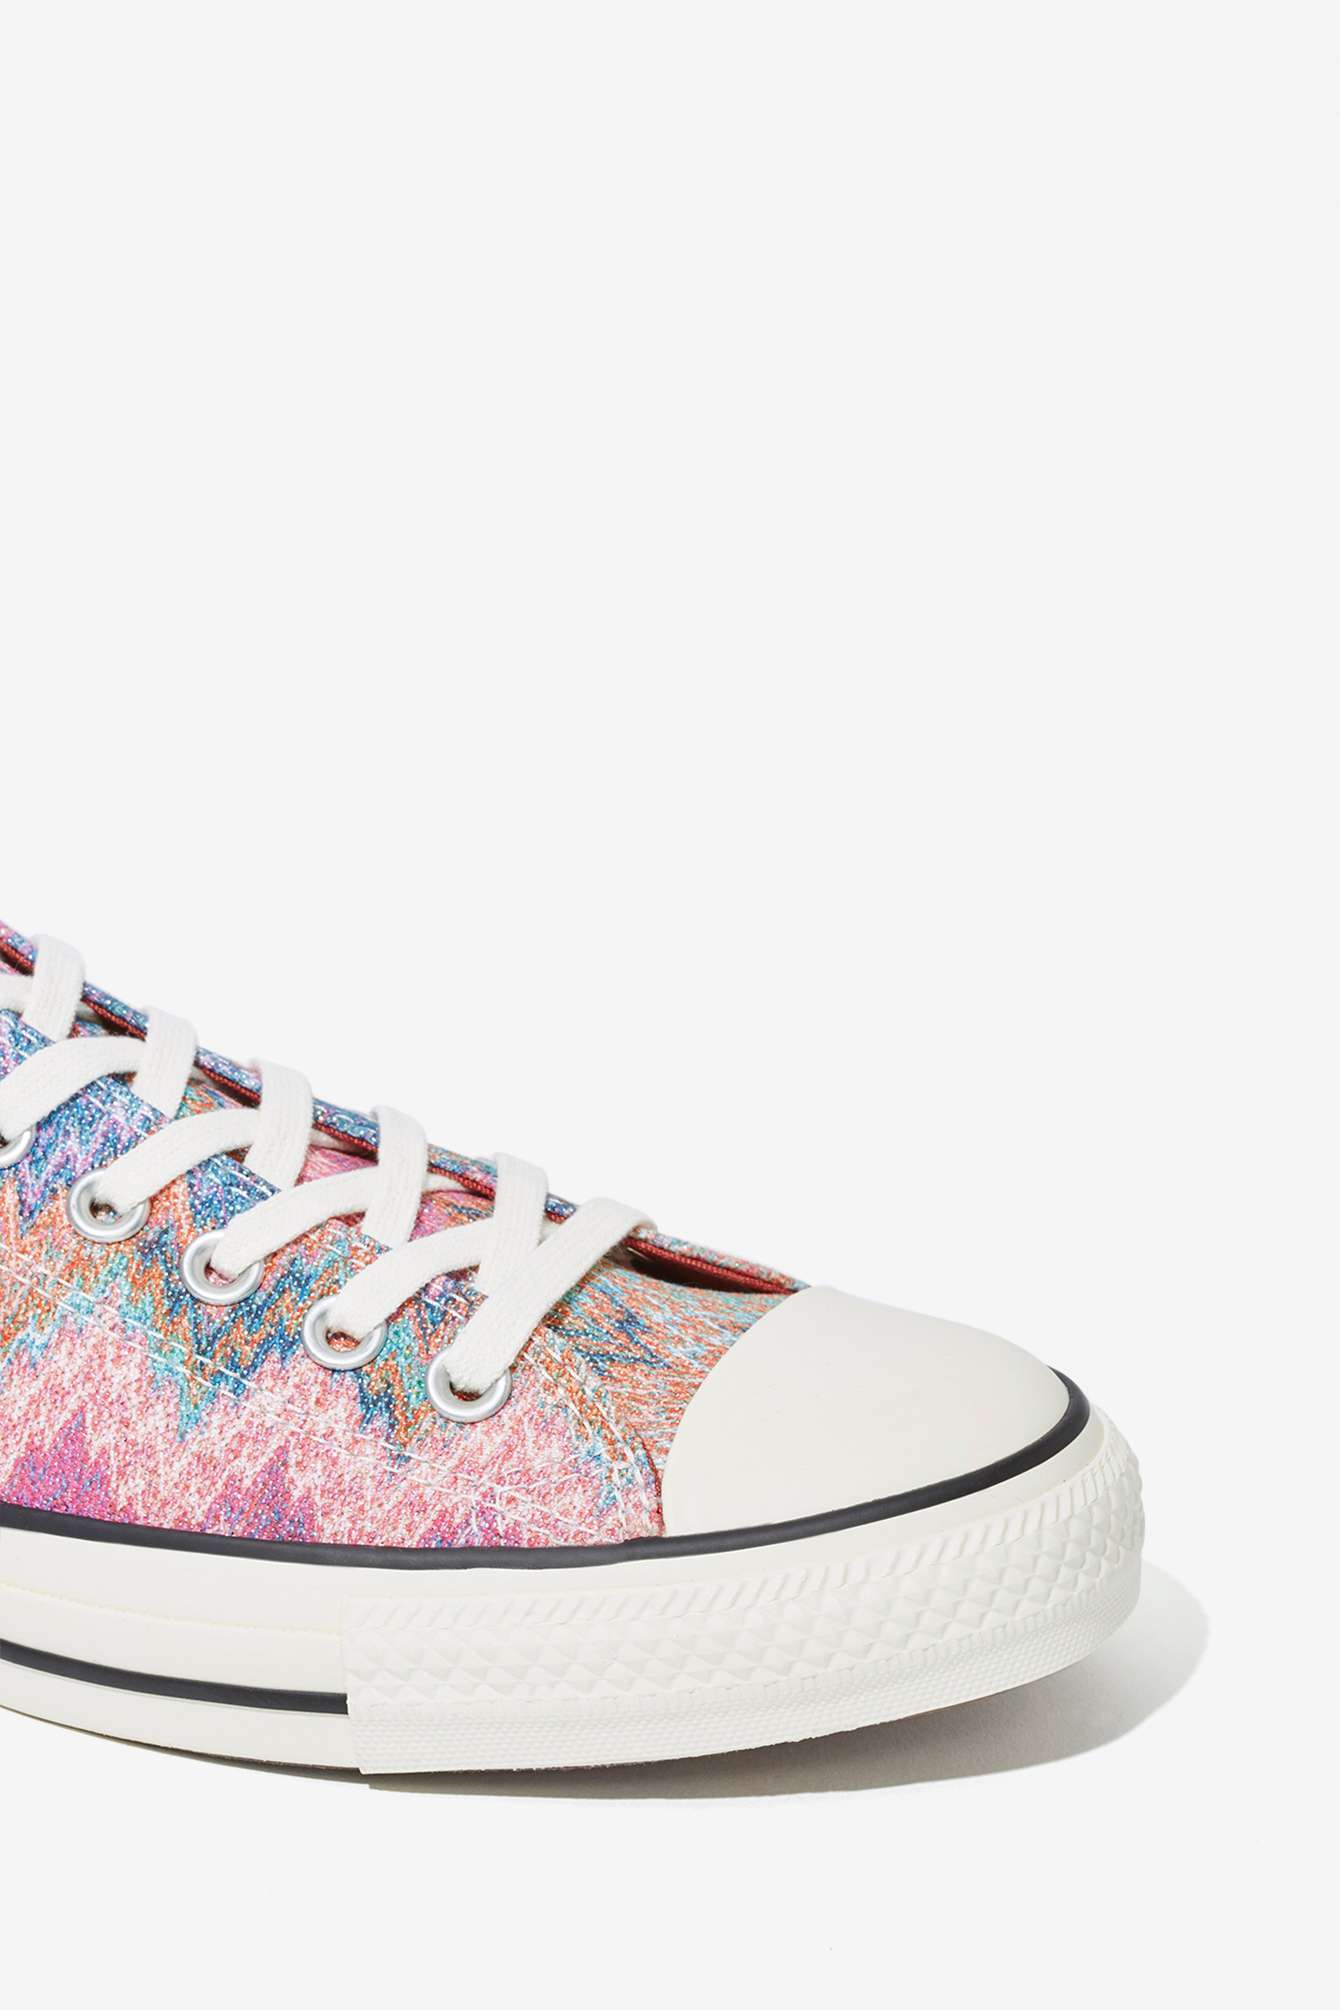 3f951557e2e6c0 Lyst - Nasty Gal Missoni X Converse All Star Low-Top Sneaker in Pink